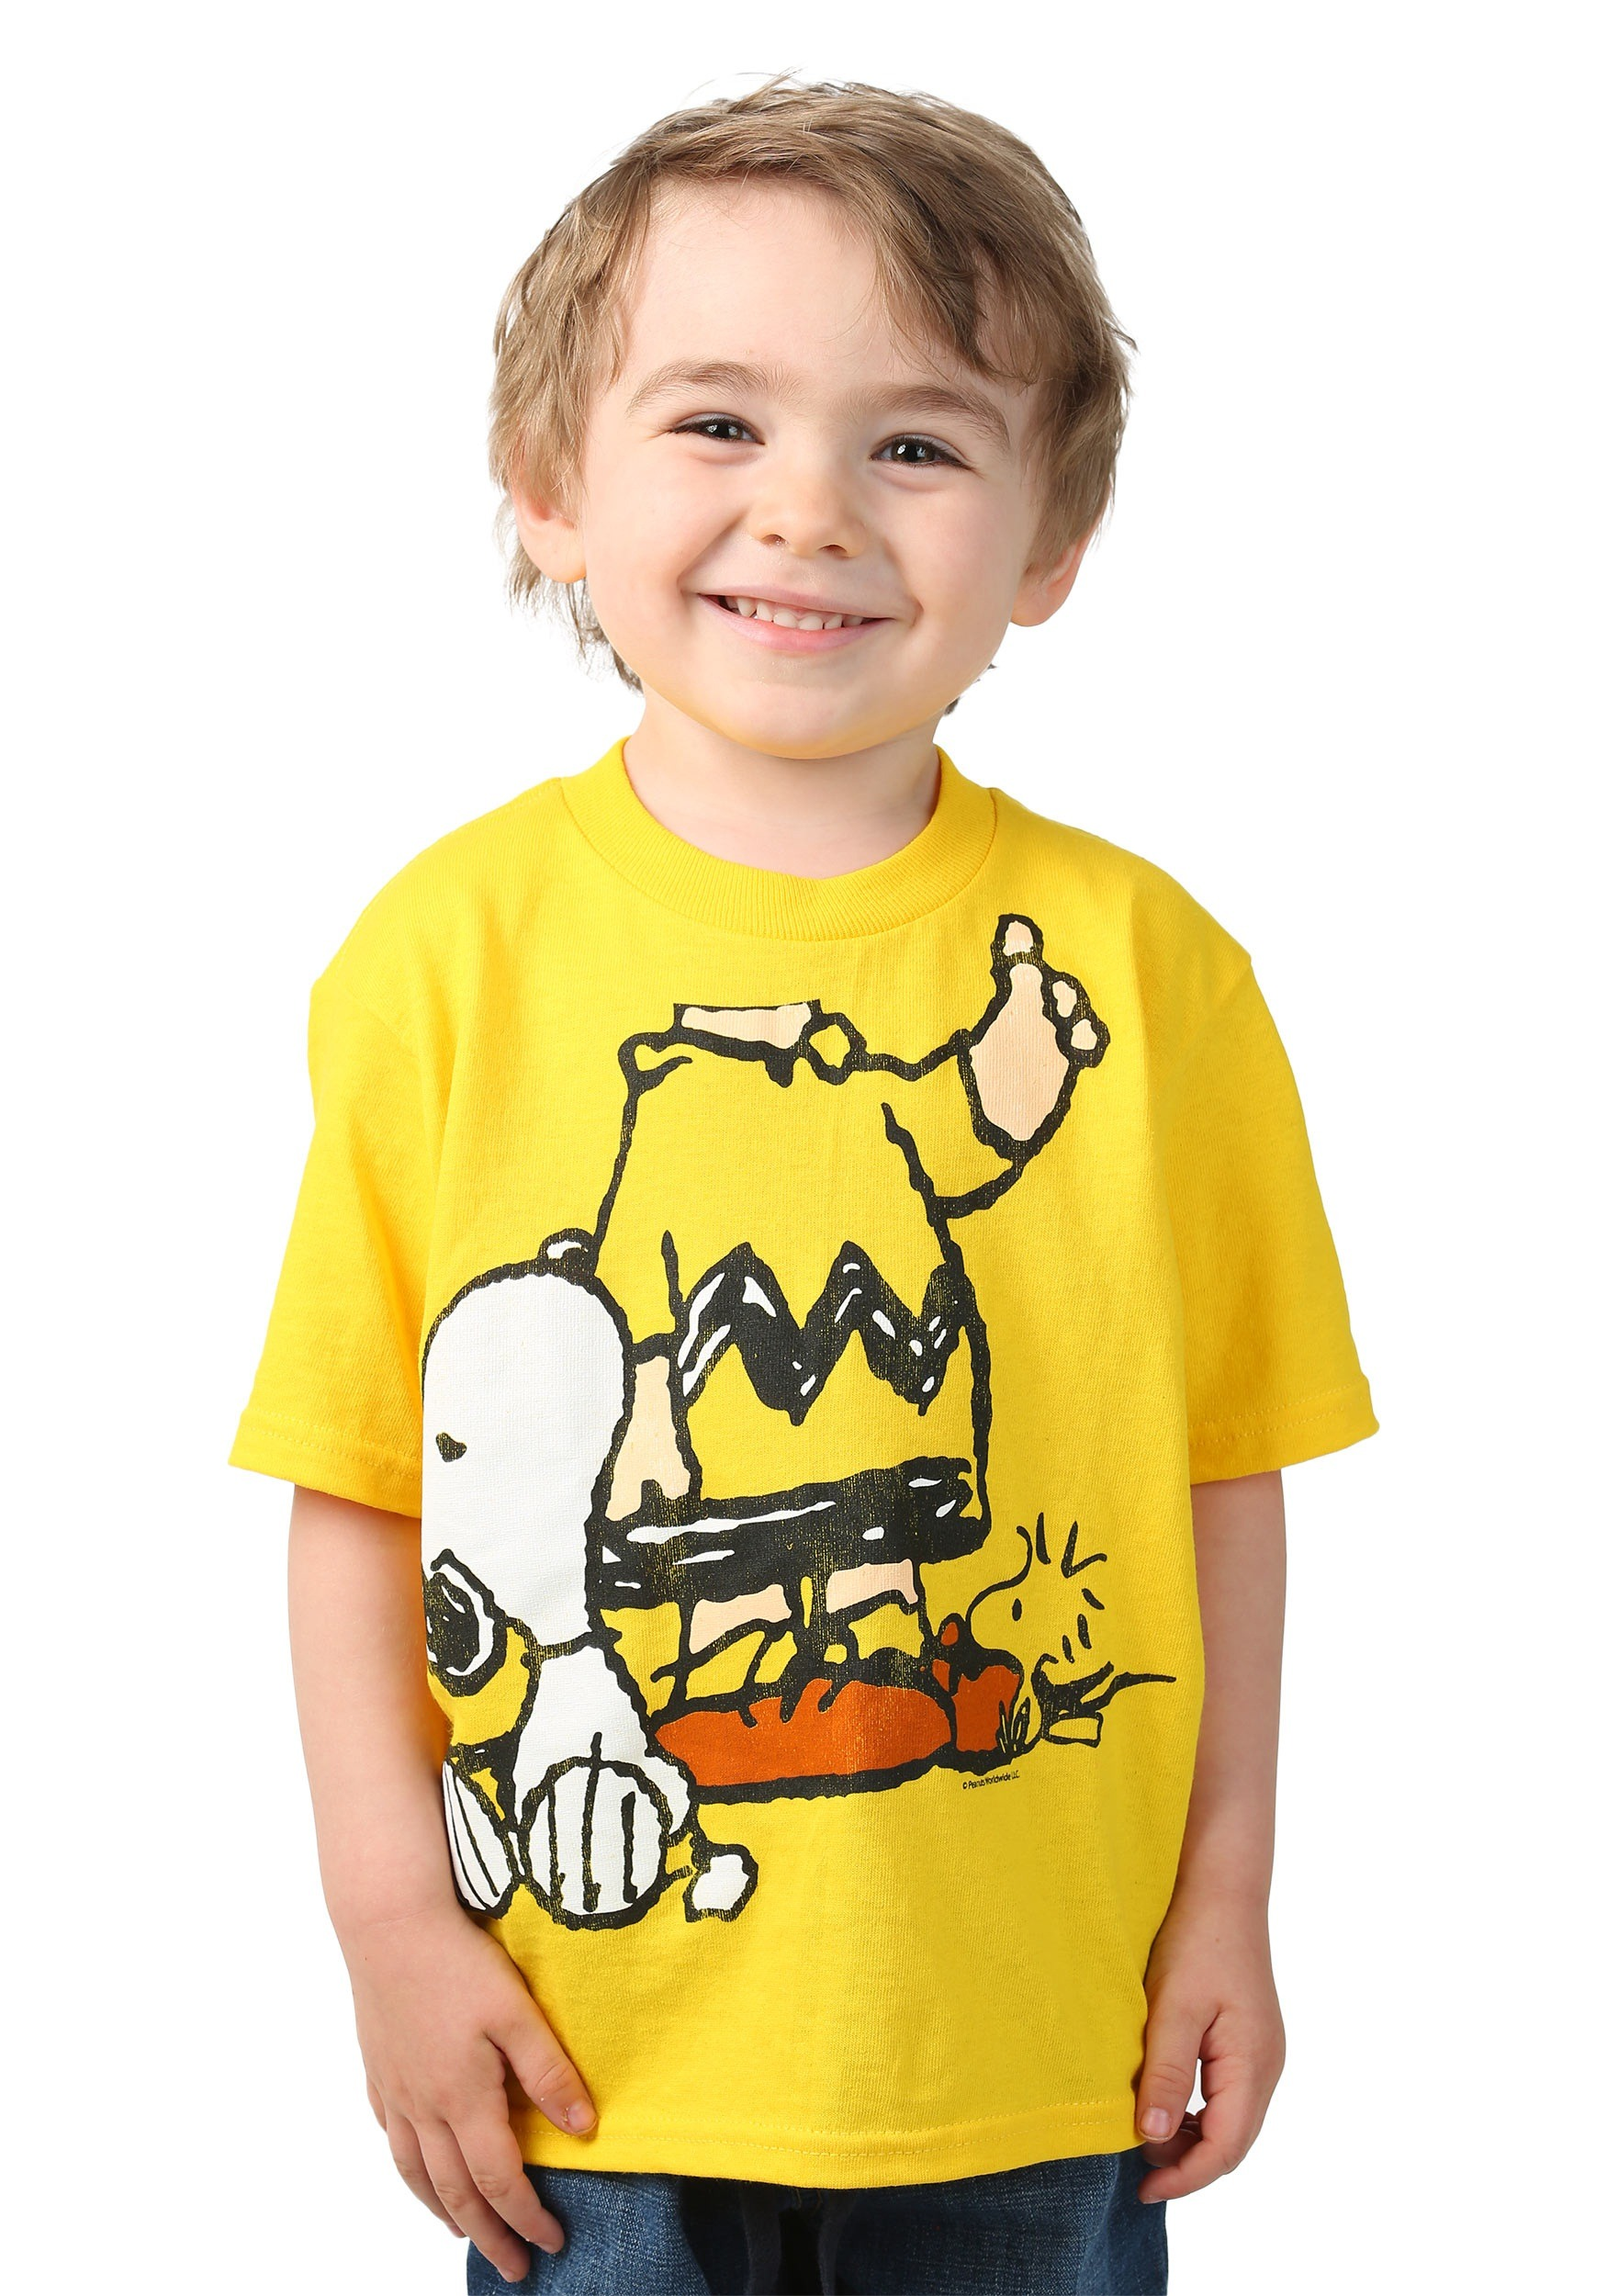 Boys/Girls Peanuts Charlie Brown T-Shirt. from $ 17 95 Prime. out of 5 stars Kavio. Toddlers Crew Neck Short Sleeve Tee Jersey (Same TJC) from $ 7 40 Prime. out of 5 stars Gioberti. Boy's Long Sleeve Dress Shirt and Plaid Tie Accessories Set $ 19 99 Prime. out of 5 stars Scooby Doo. Boys' License T-Shirt.